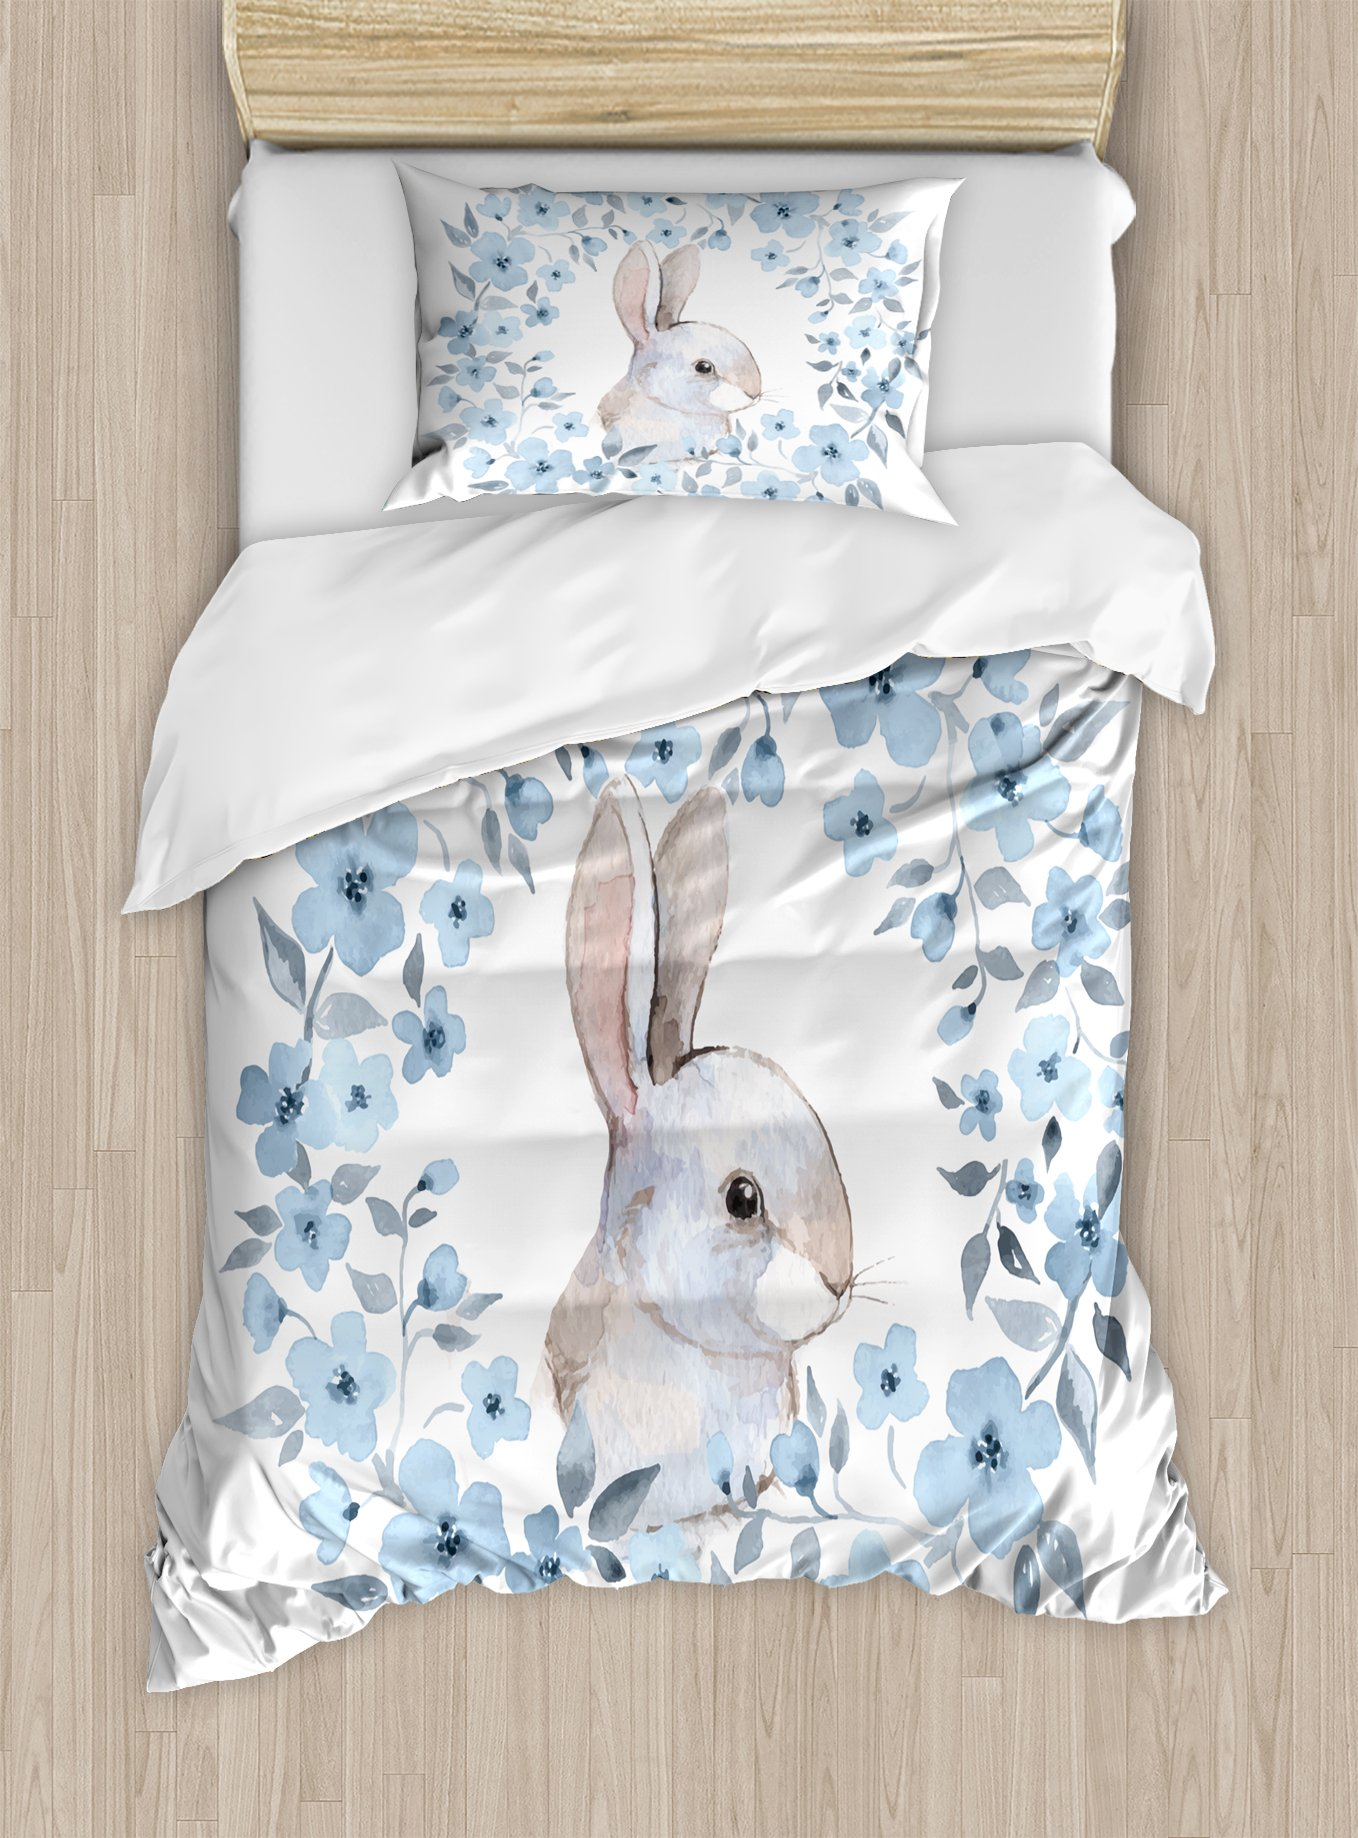 Ambesonne Watercolor Flower Duvet Cover Set Twin Size, Bunny Rabbit Portrait in Floral Wreath Illustration Country Style, Decorative 2 Piece Bedding Set with 1 Pillow Sham, Blue Grey White